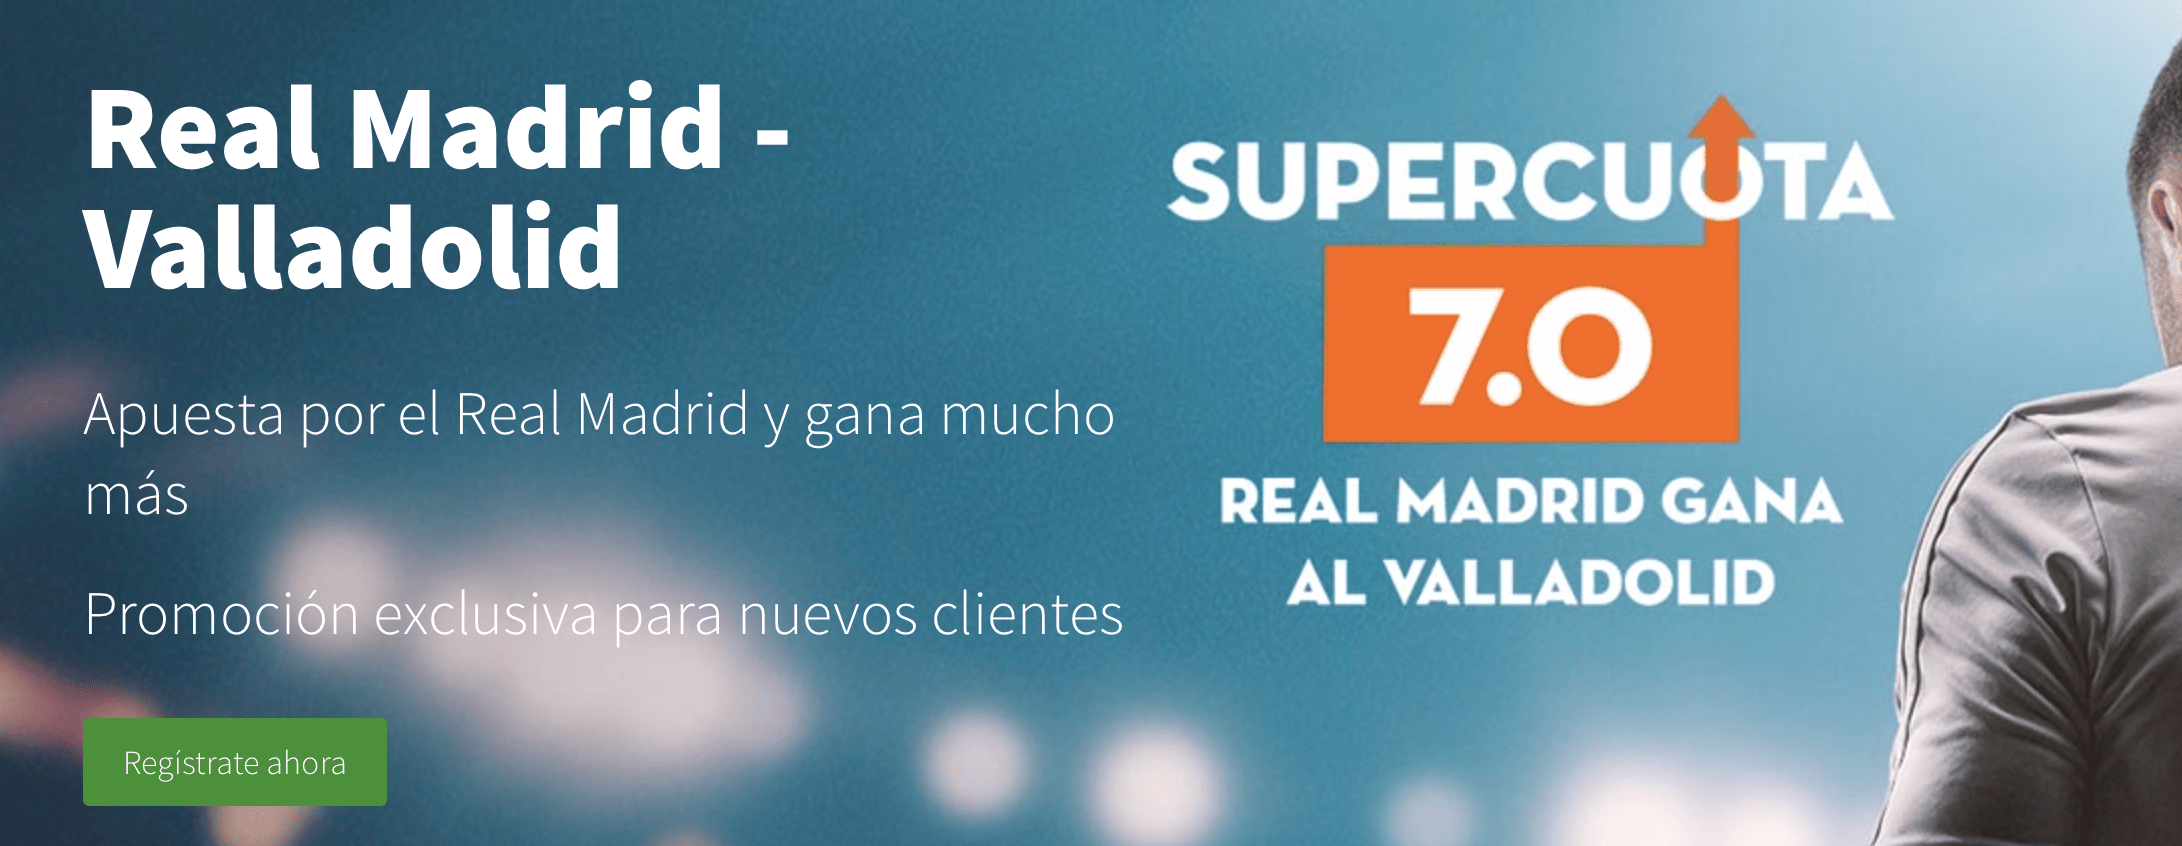 Supercuotas Betsson Real Madrid - Valladolid